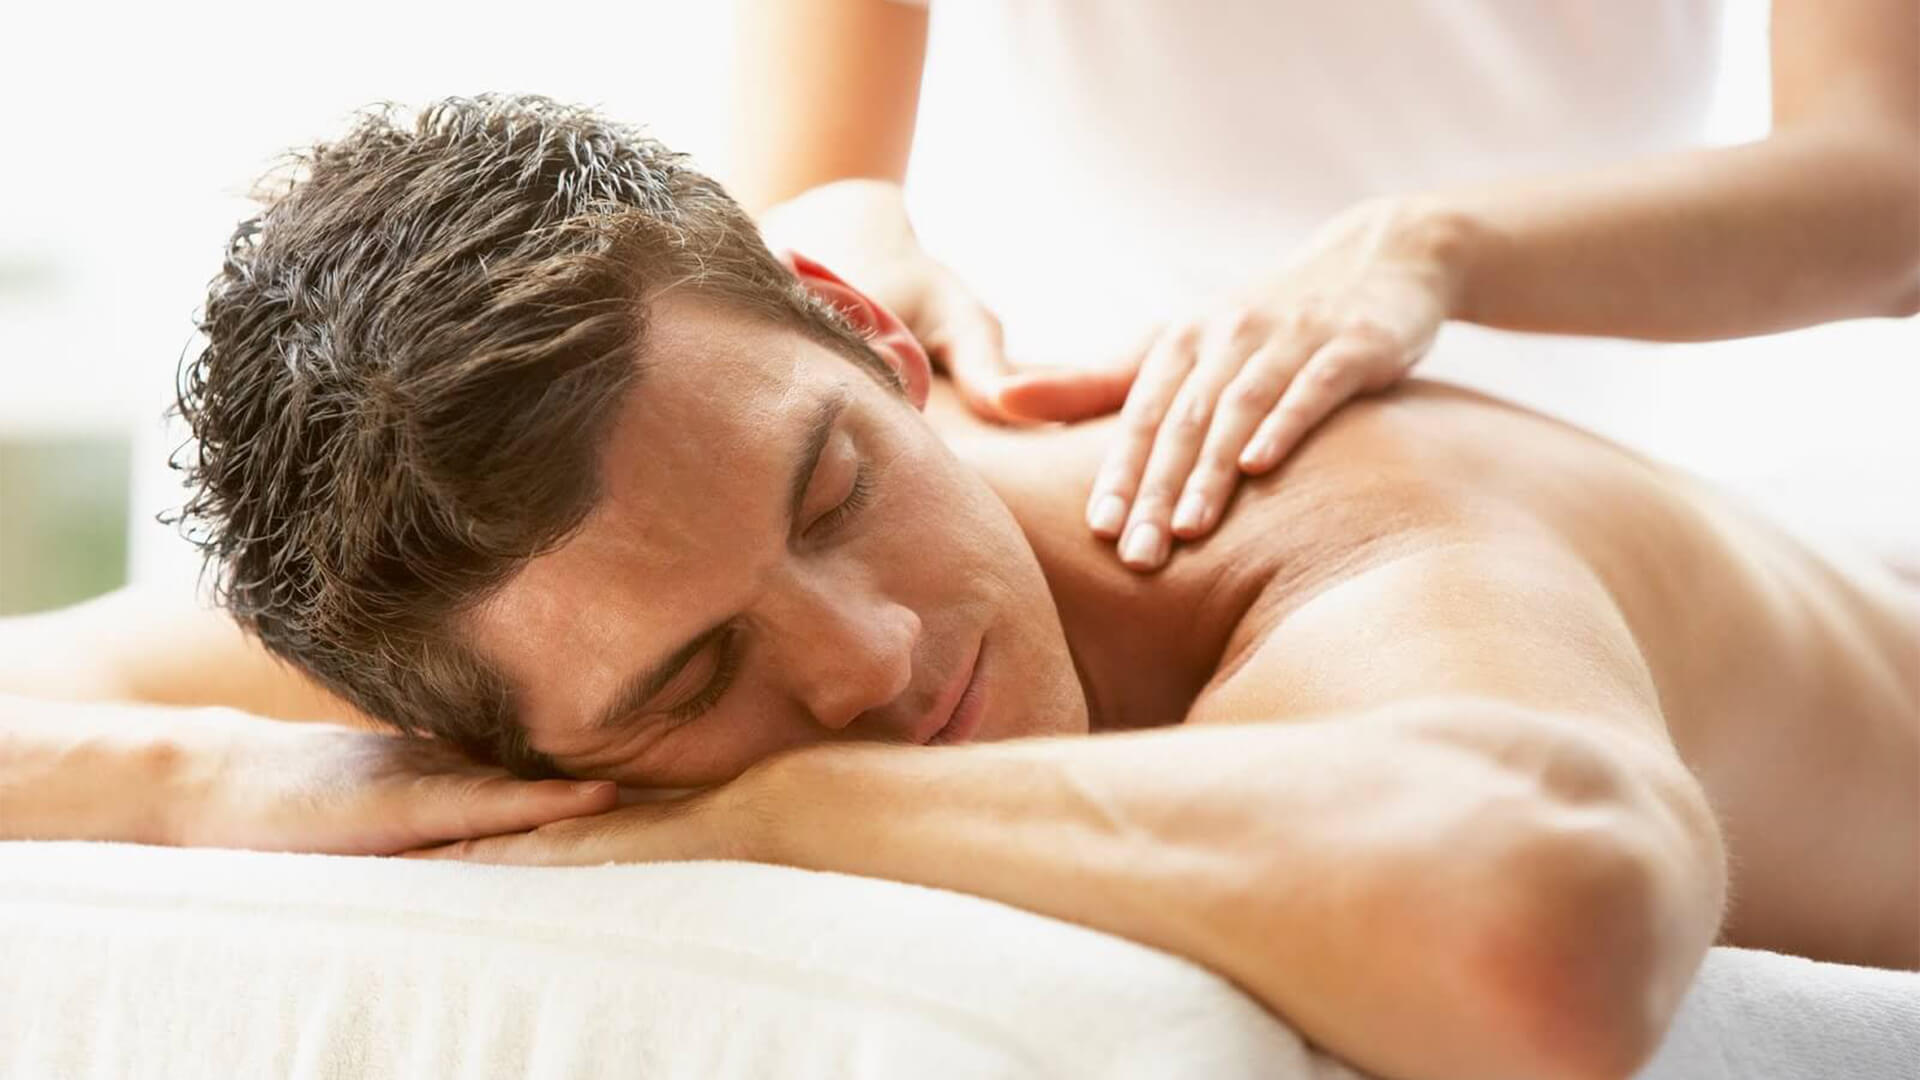 Why happy ending massage is so pleasurable